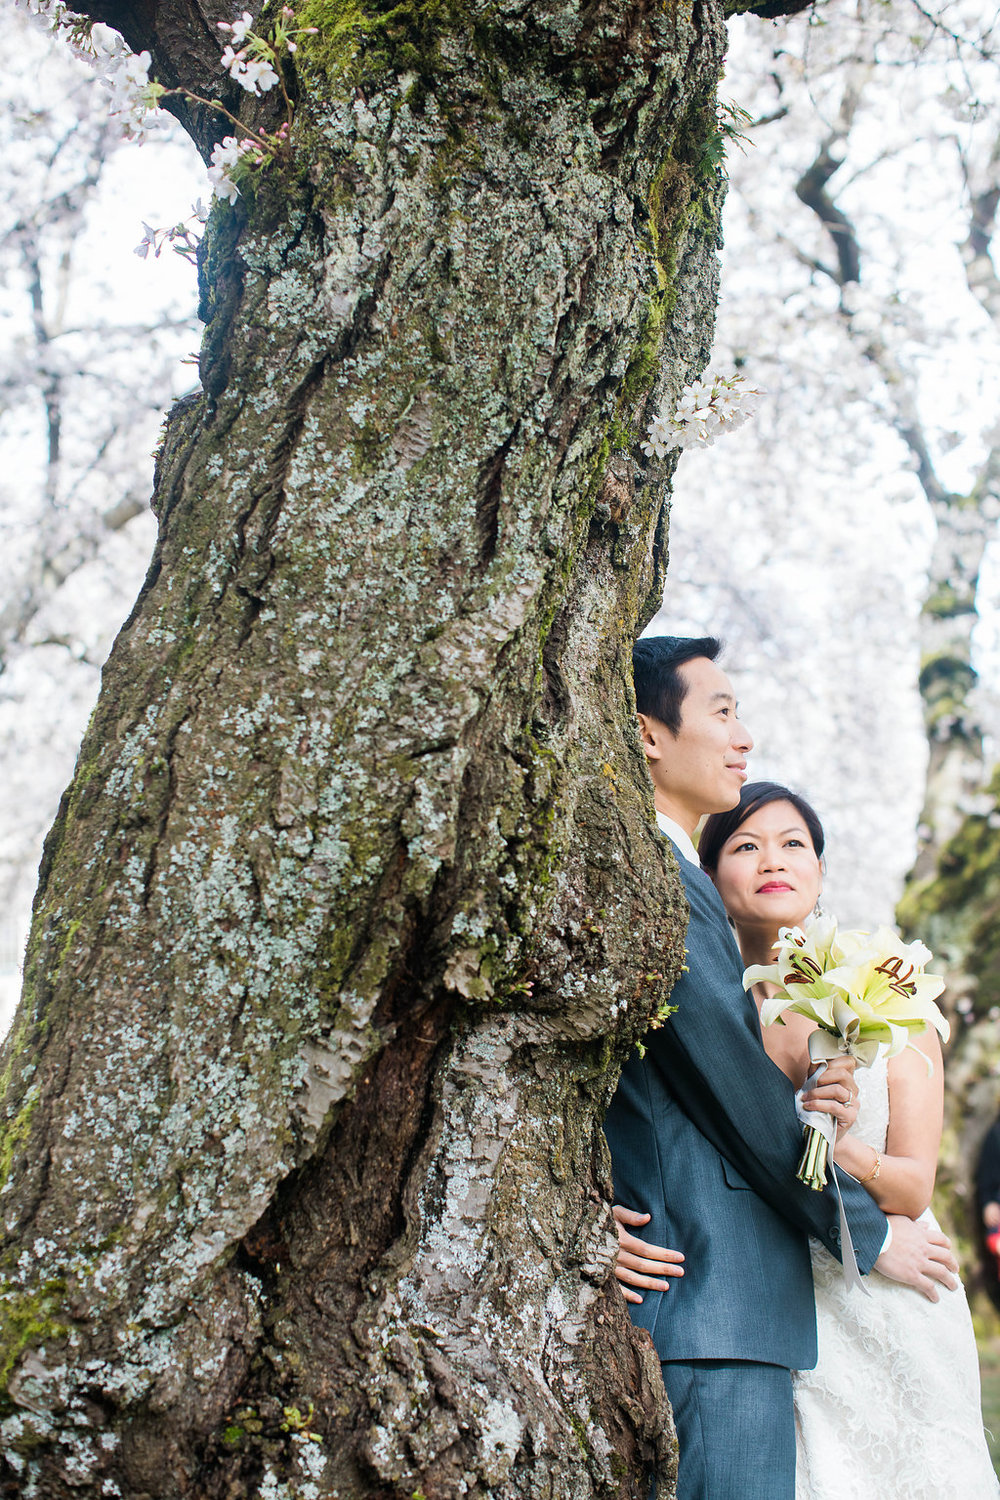 Bao-Uyen+Chris+Engagement©2016AdinaPrestonWeddings_Seattle16.jpg